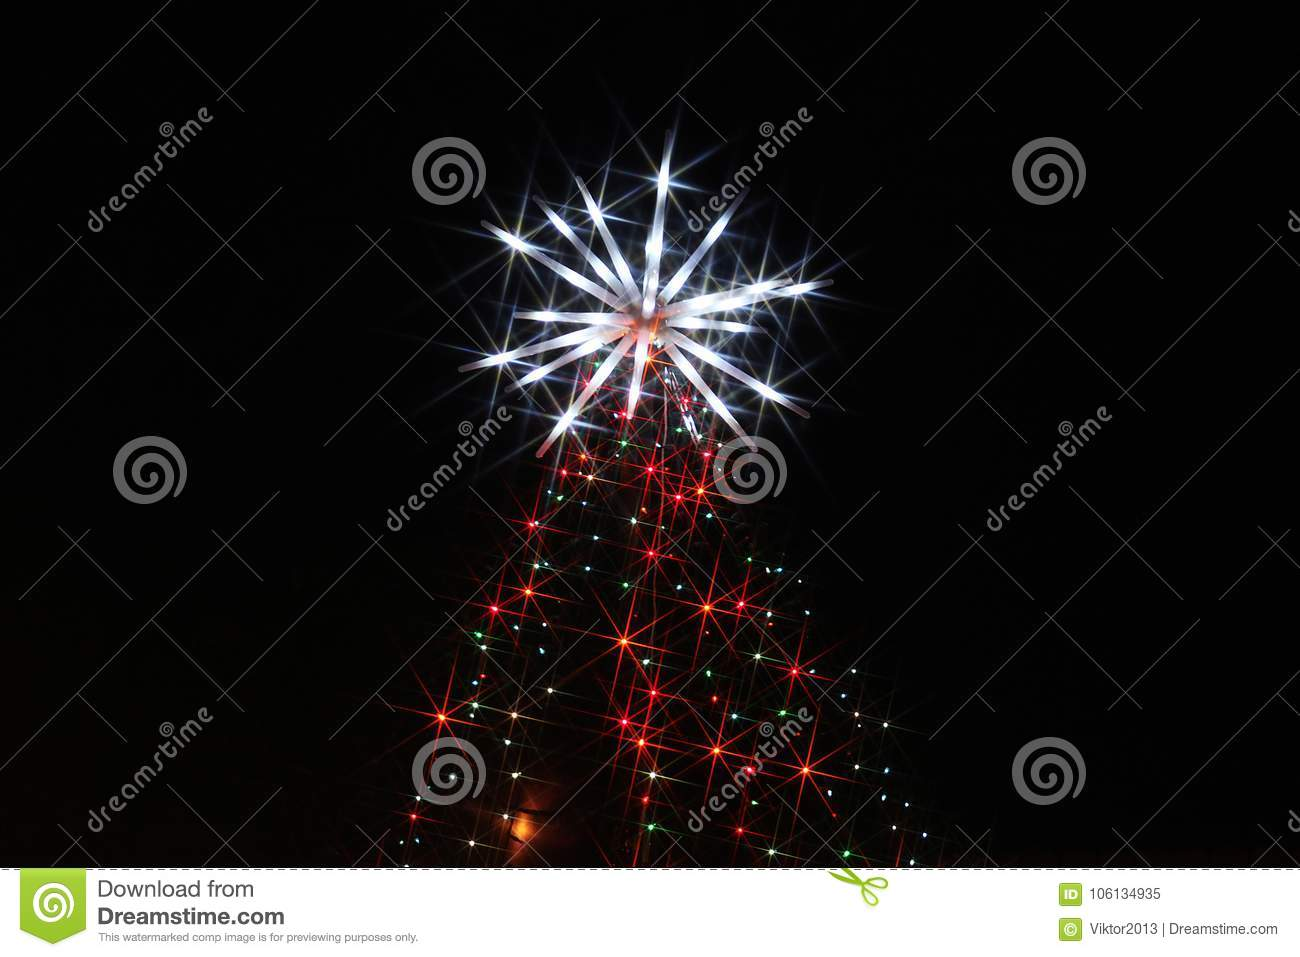 Christmas Celebration In America.Christmas Illuminations In America Stock Image Image Of